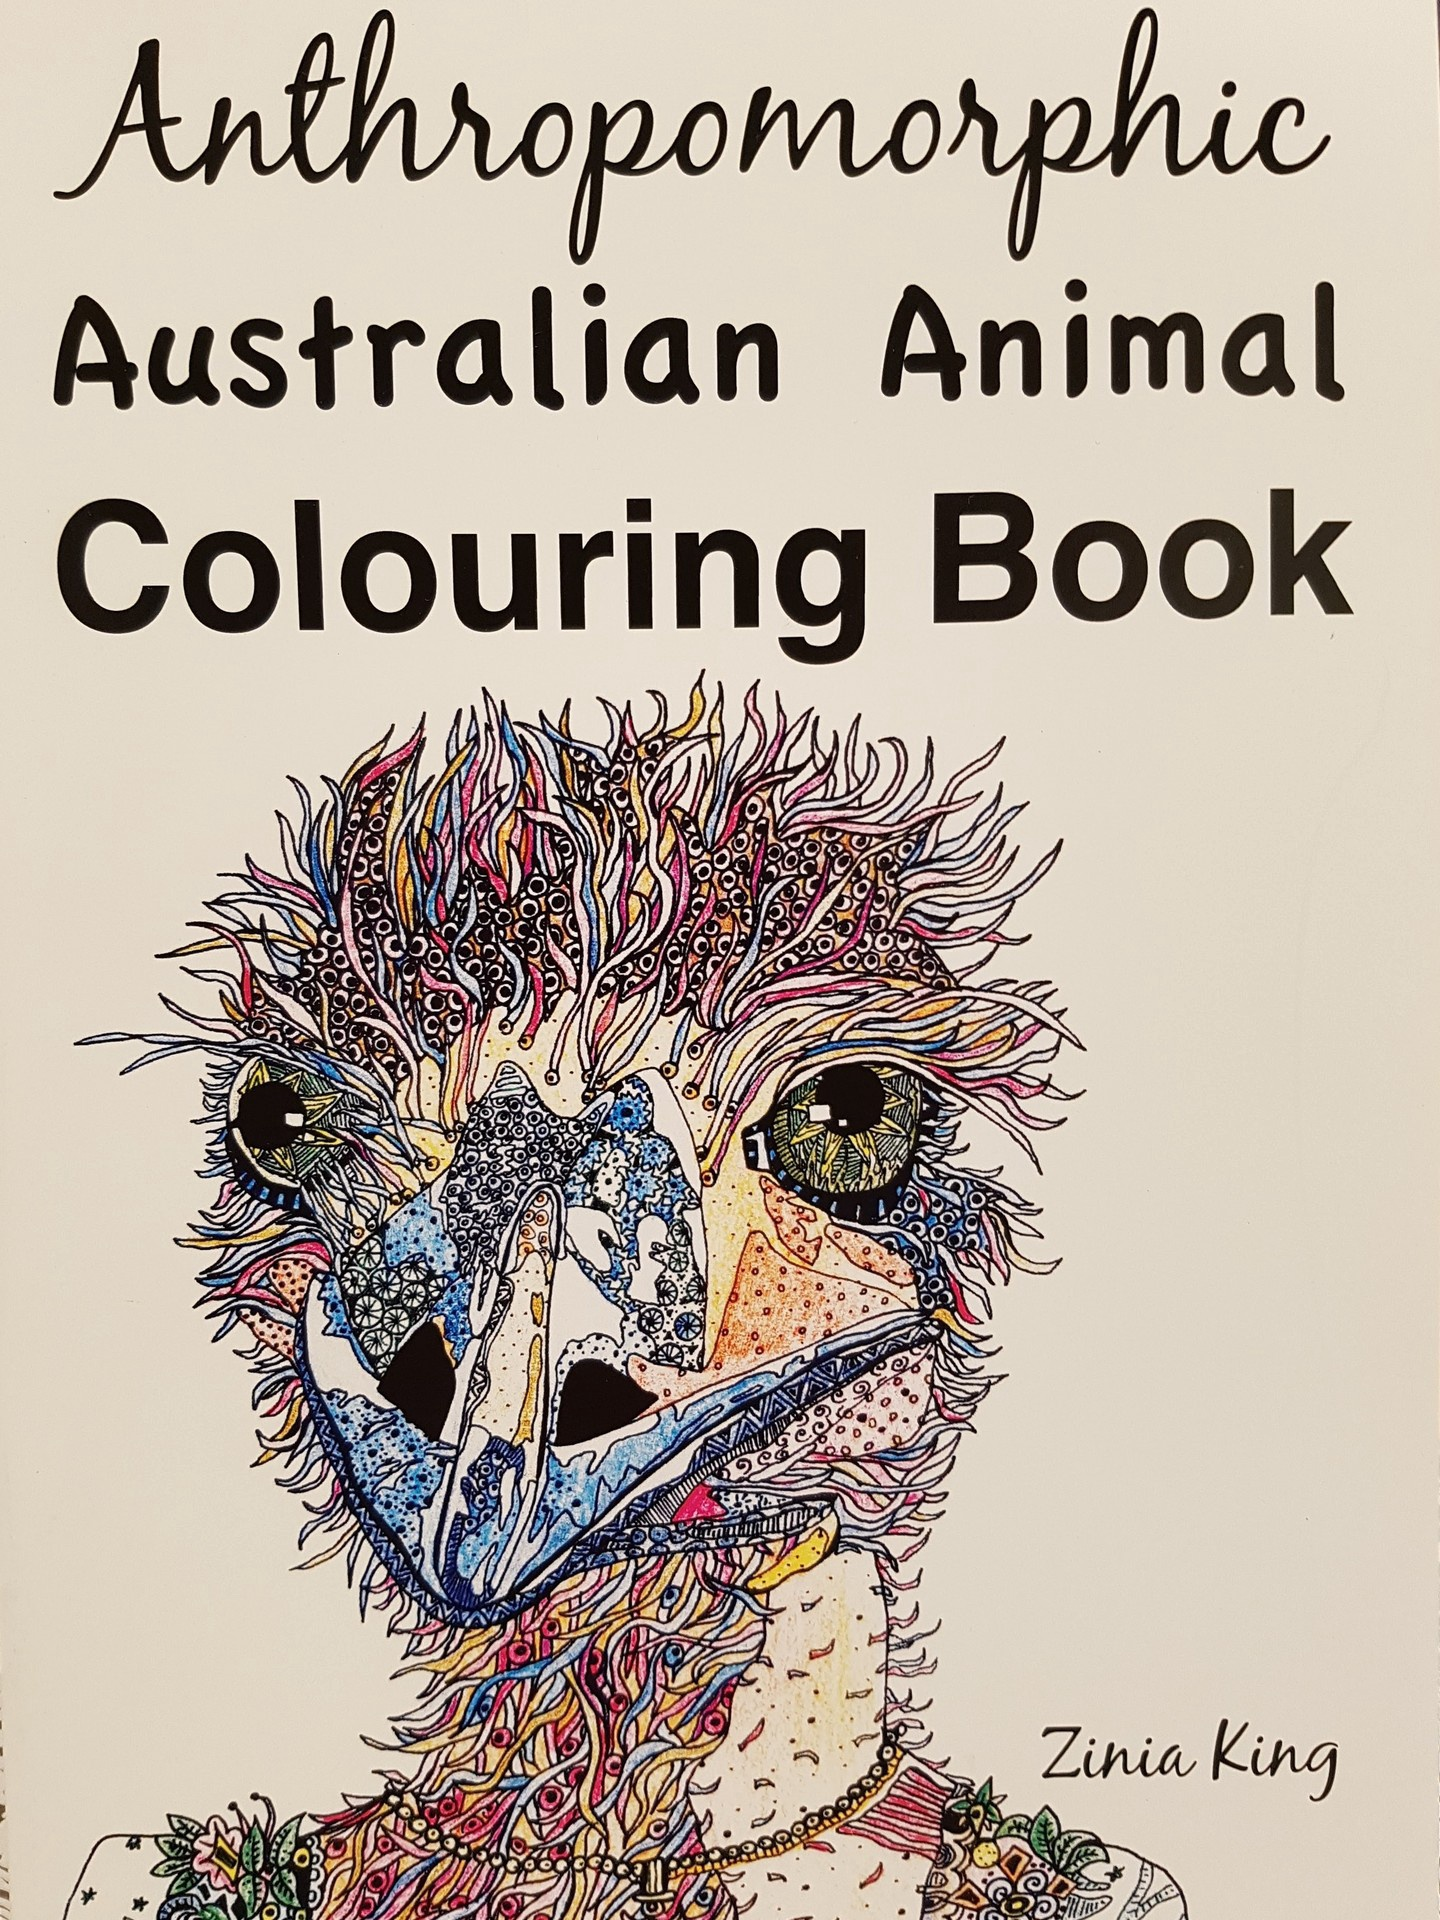 Anthropomorphic Australian Animal Colouring Book